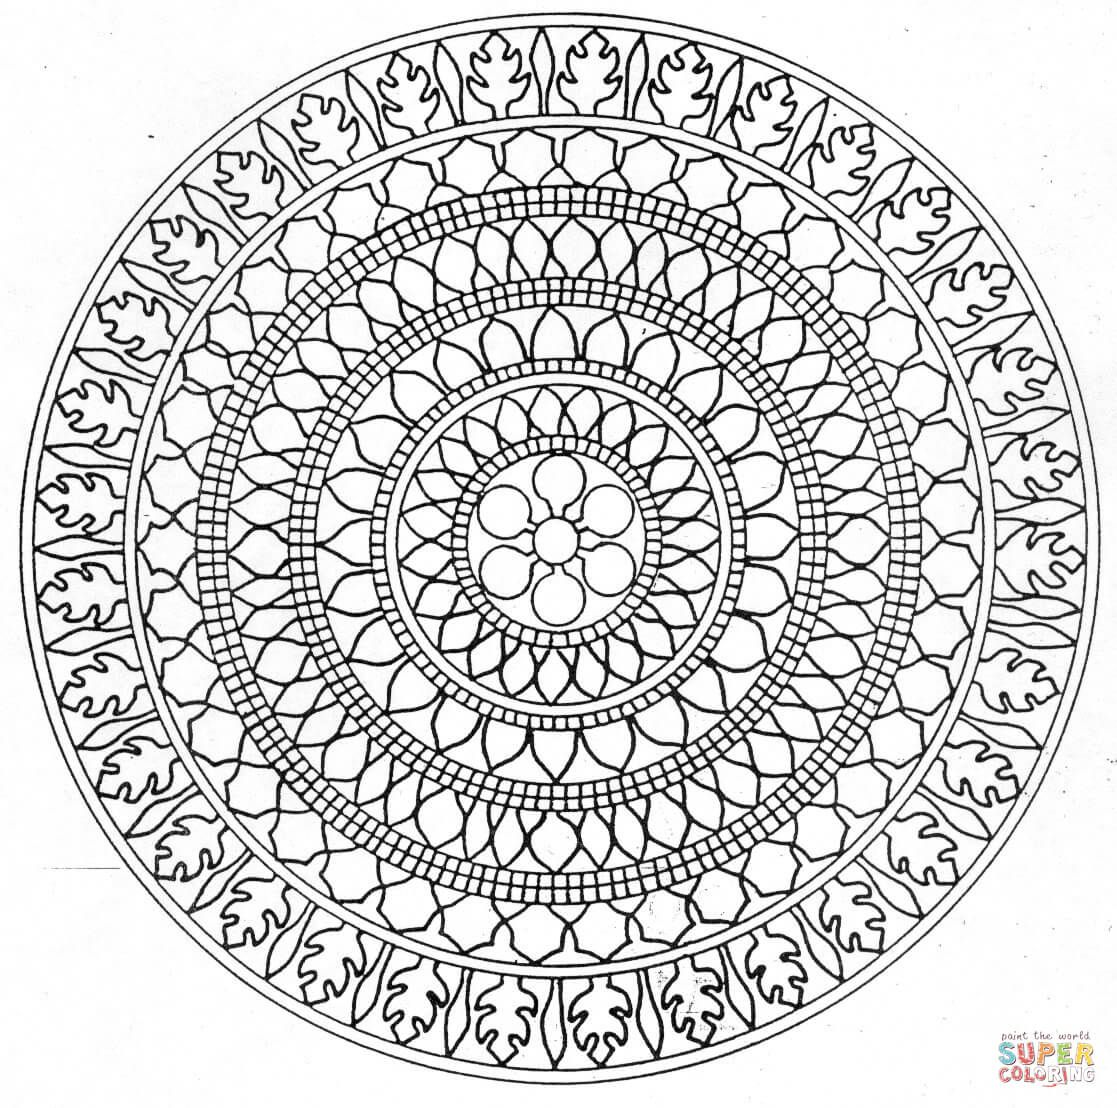 29 Printable Mandala Abstract Colouring Pages For Meditation Stress Relief Abstract Coloring Pages Mandala Coloring Books Mandala Coloring Pages